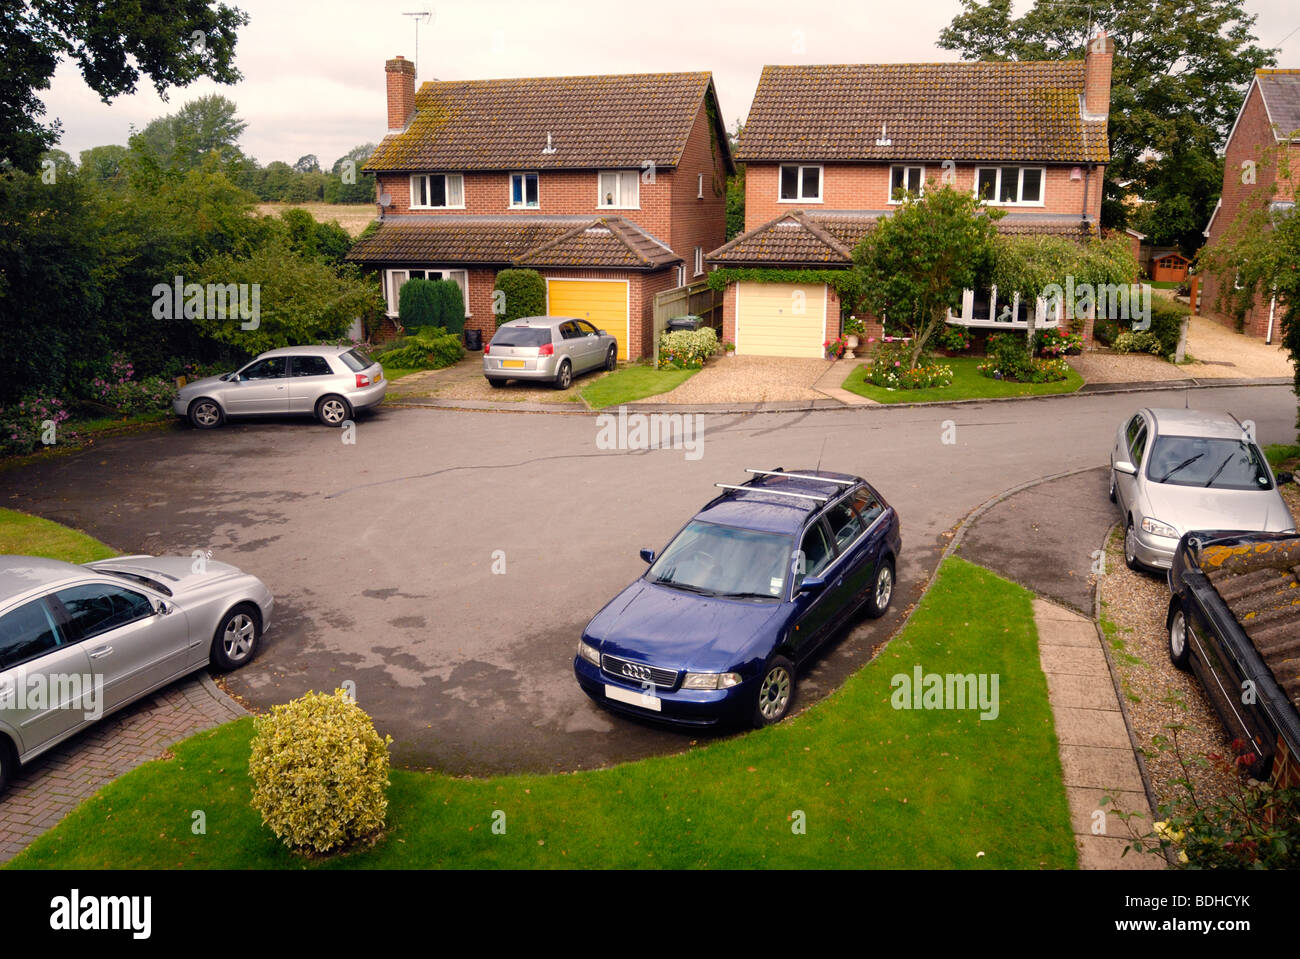 Parked cars in a suburban cul de sac - Stock Image